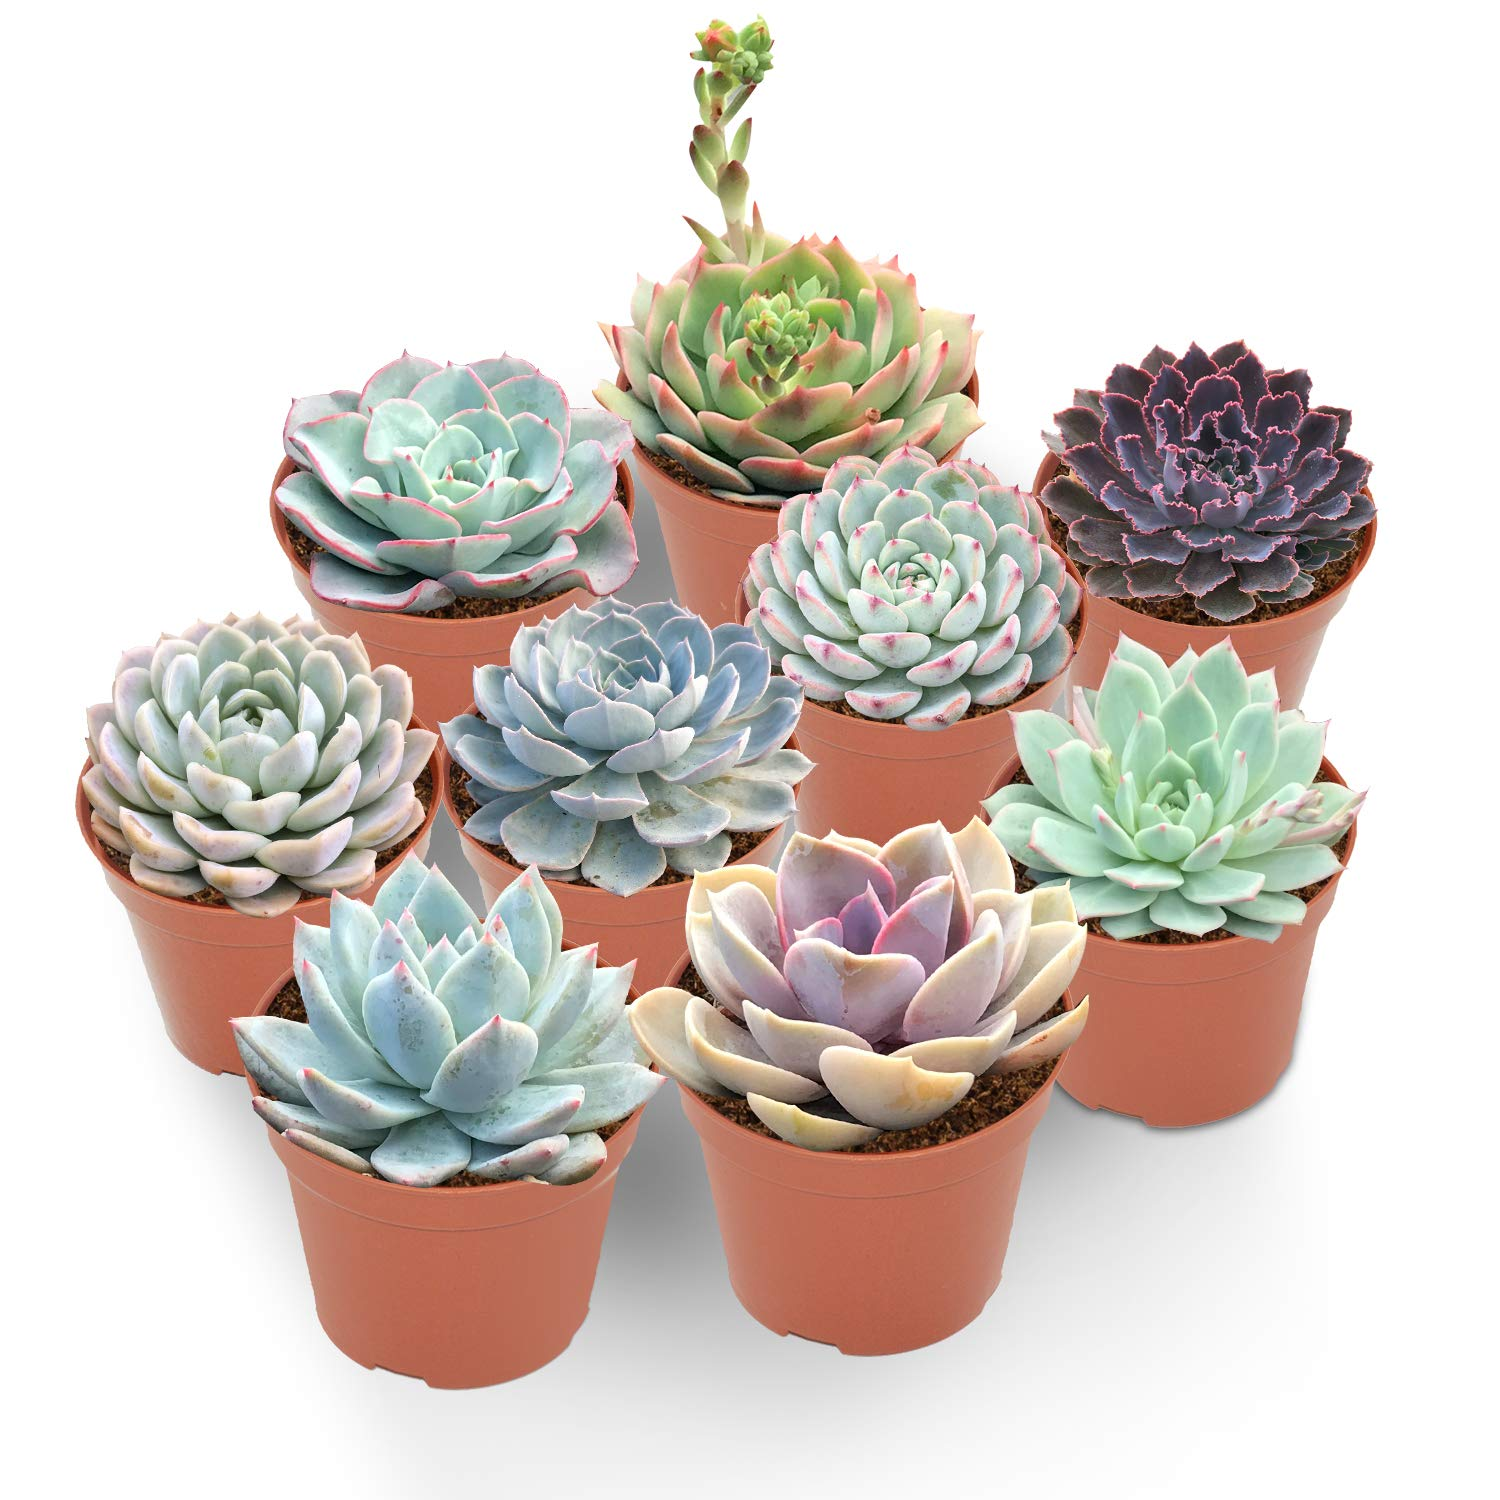 Premium Rosette Succulents, 9 Assorted Rooted Succulents in 4'' Planter Pots with Soil, Real Live Succulents Bonsai for Indoor Home Office Cactus Decor, Terrariums, Mini Garden by The Next Gardener (Image #1)